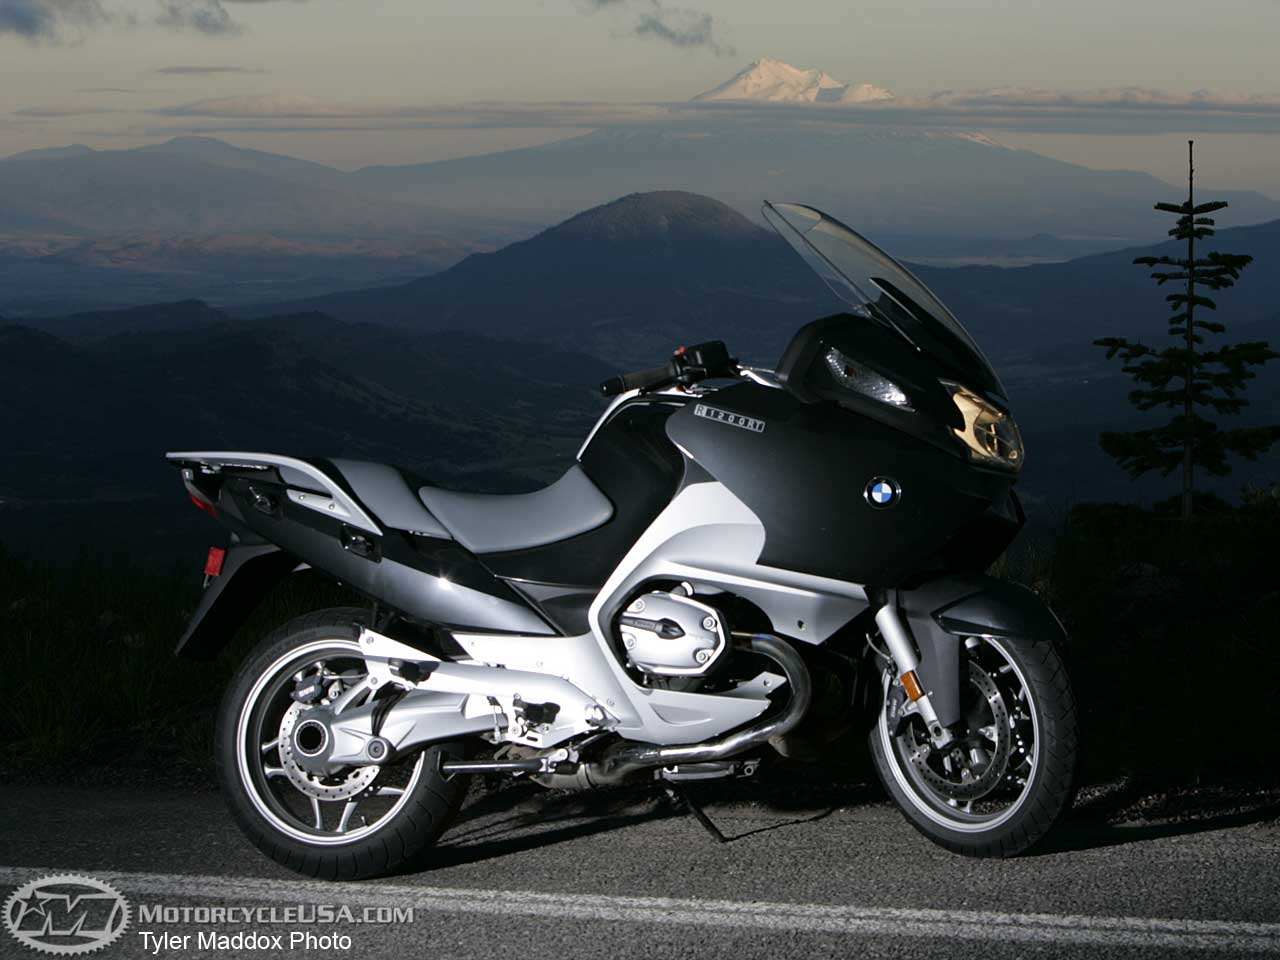 BMW R1150RT images #7651